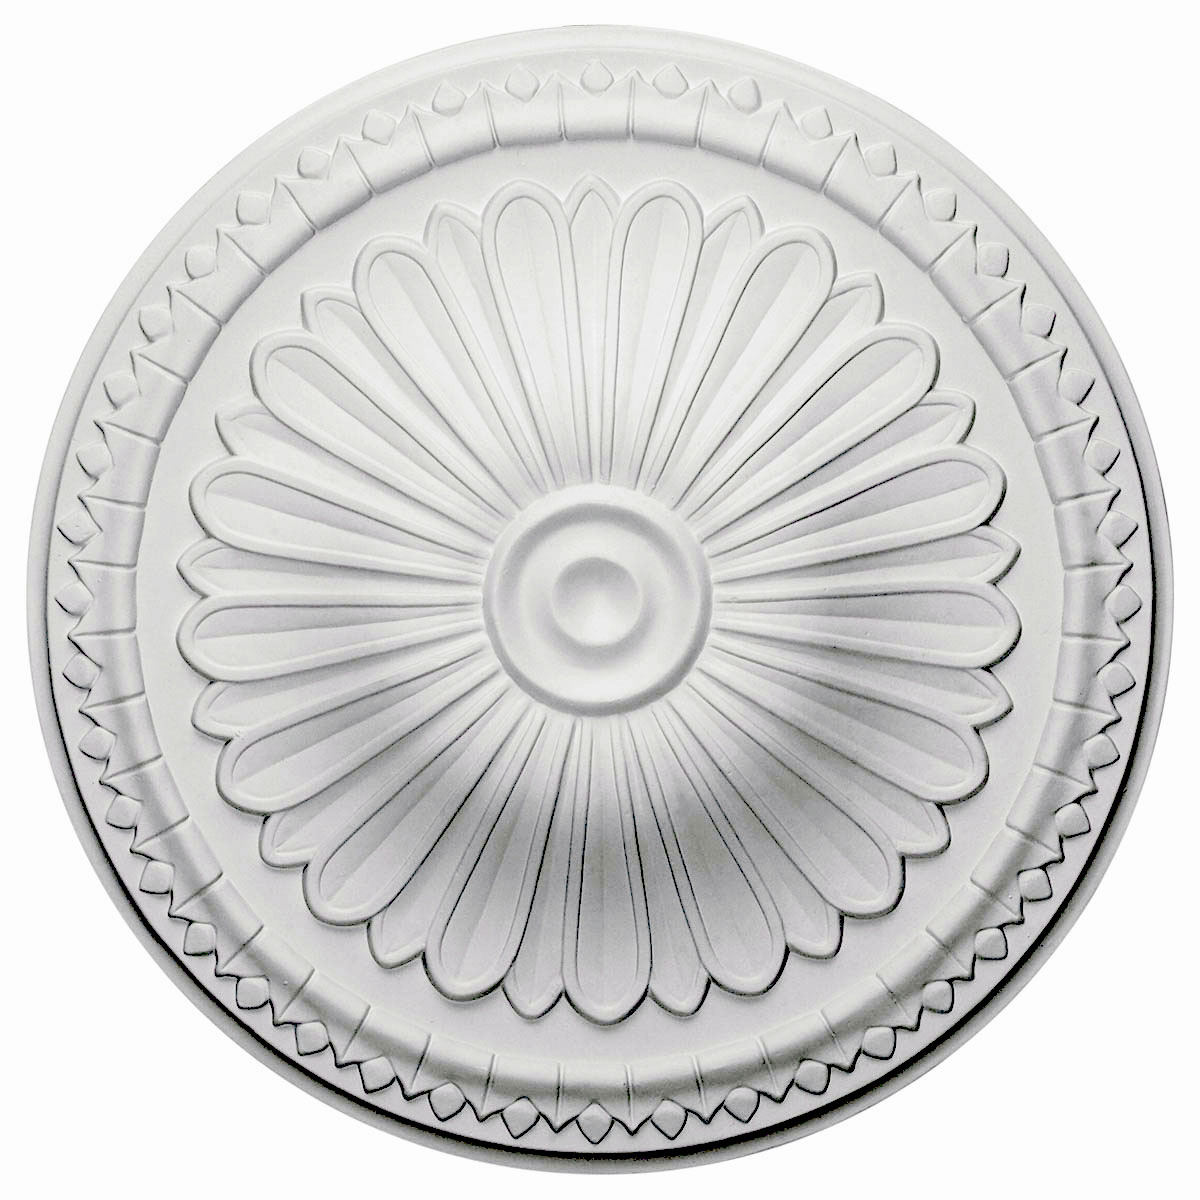 new of ceiling image ceilings ideas depot design medallions models home modern decorative